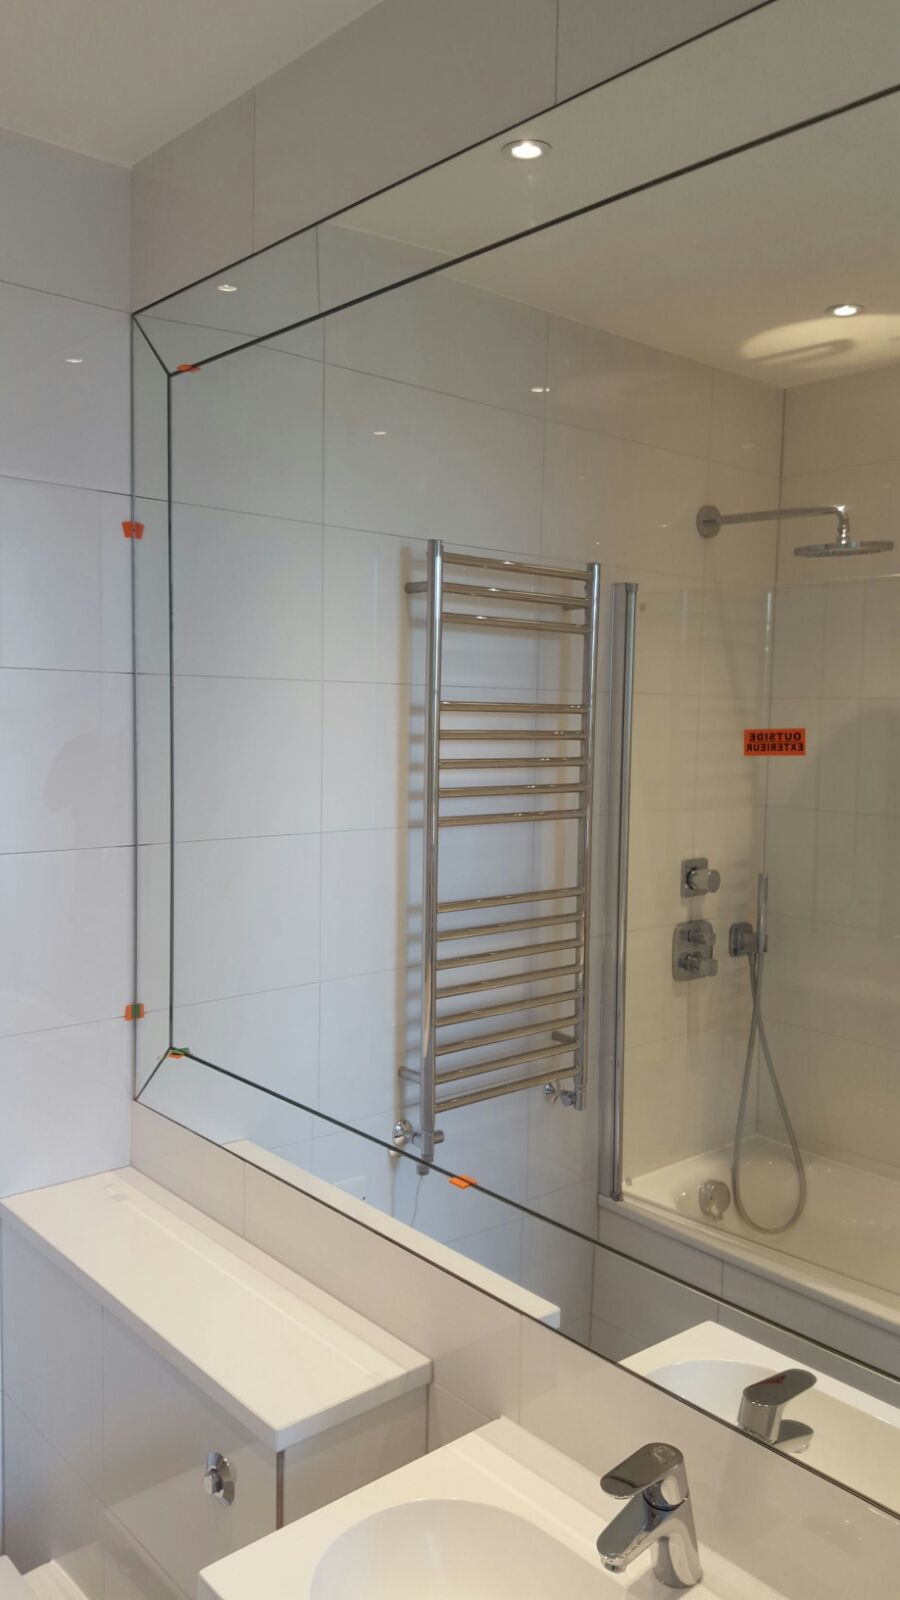 bathroom mirrors made to measure bespoke mirrors made to measure mirrors 22257 | bathroom